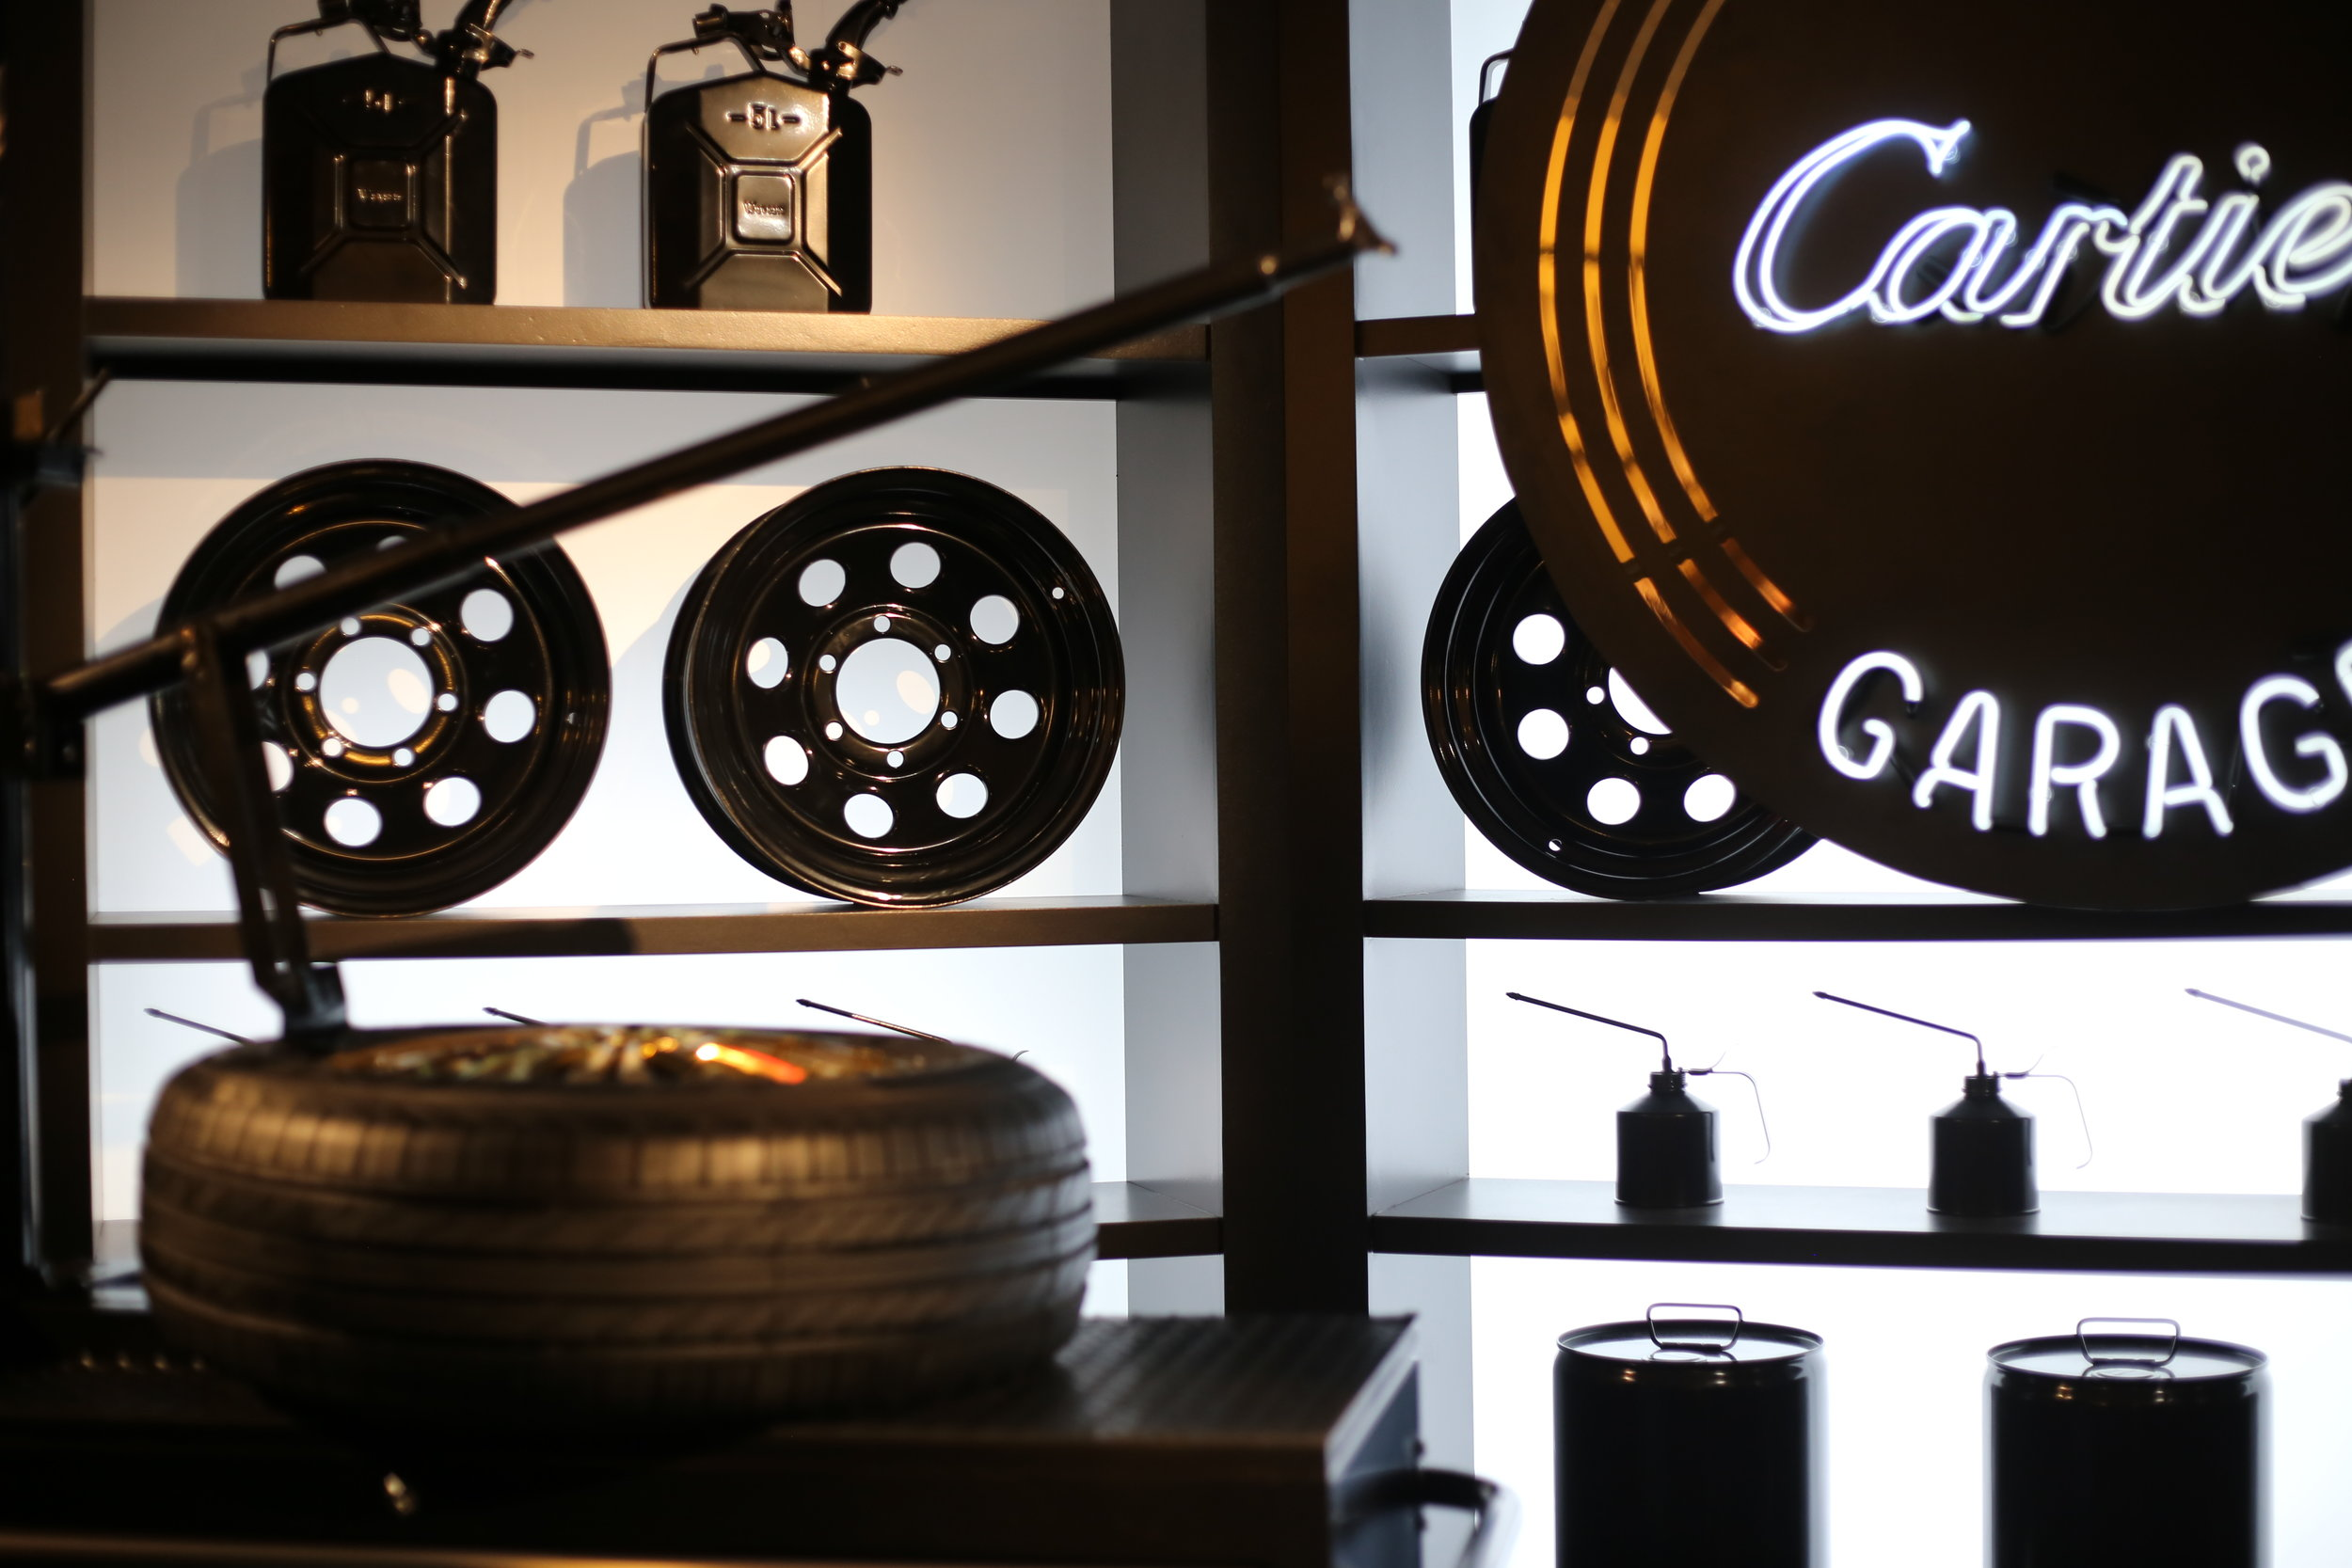 Plan your visit - the Cartier Fifth Avenue Mansion from September 7th until September 26th to experience the Precious Garage on Floor 3.